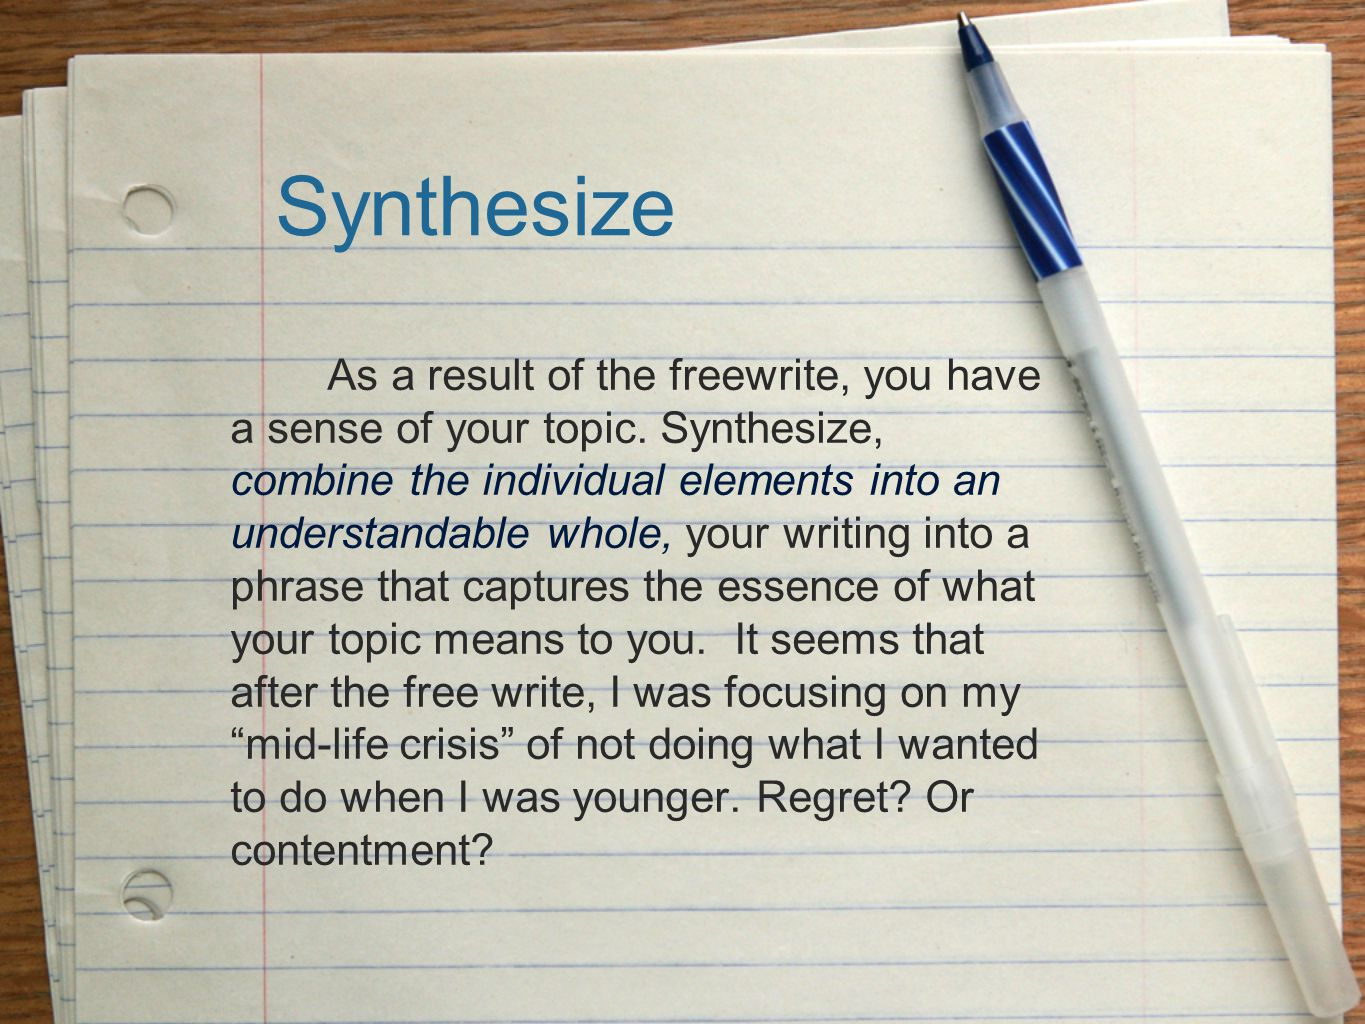 Synthesize As a result of the freewrite, you have a sense of your topic. Synthesize, combine the individual elements into an understandable whole, you